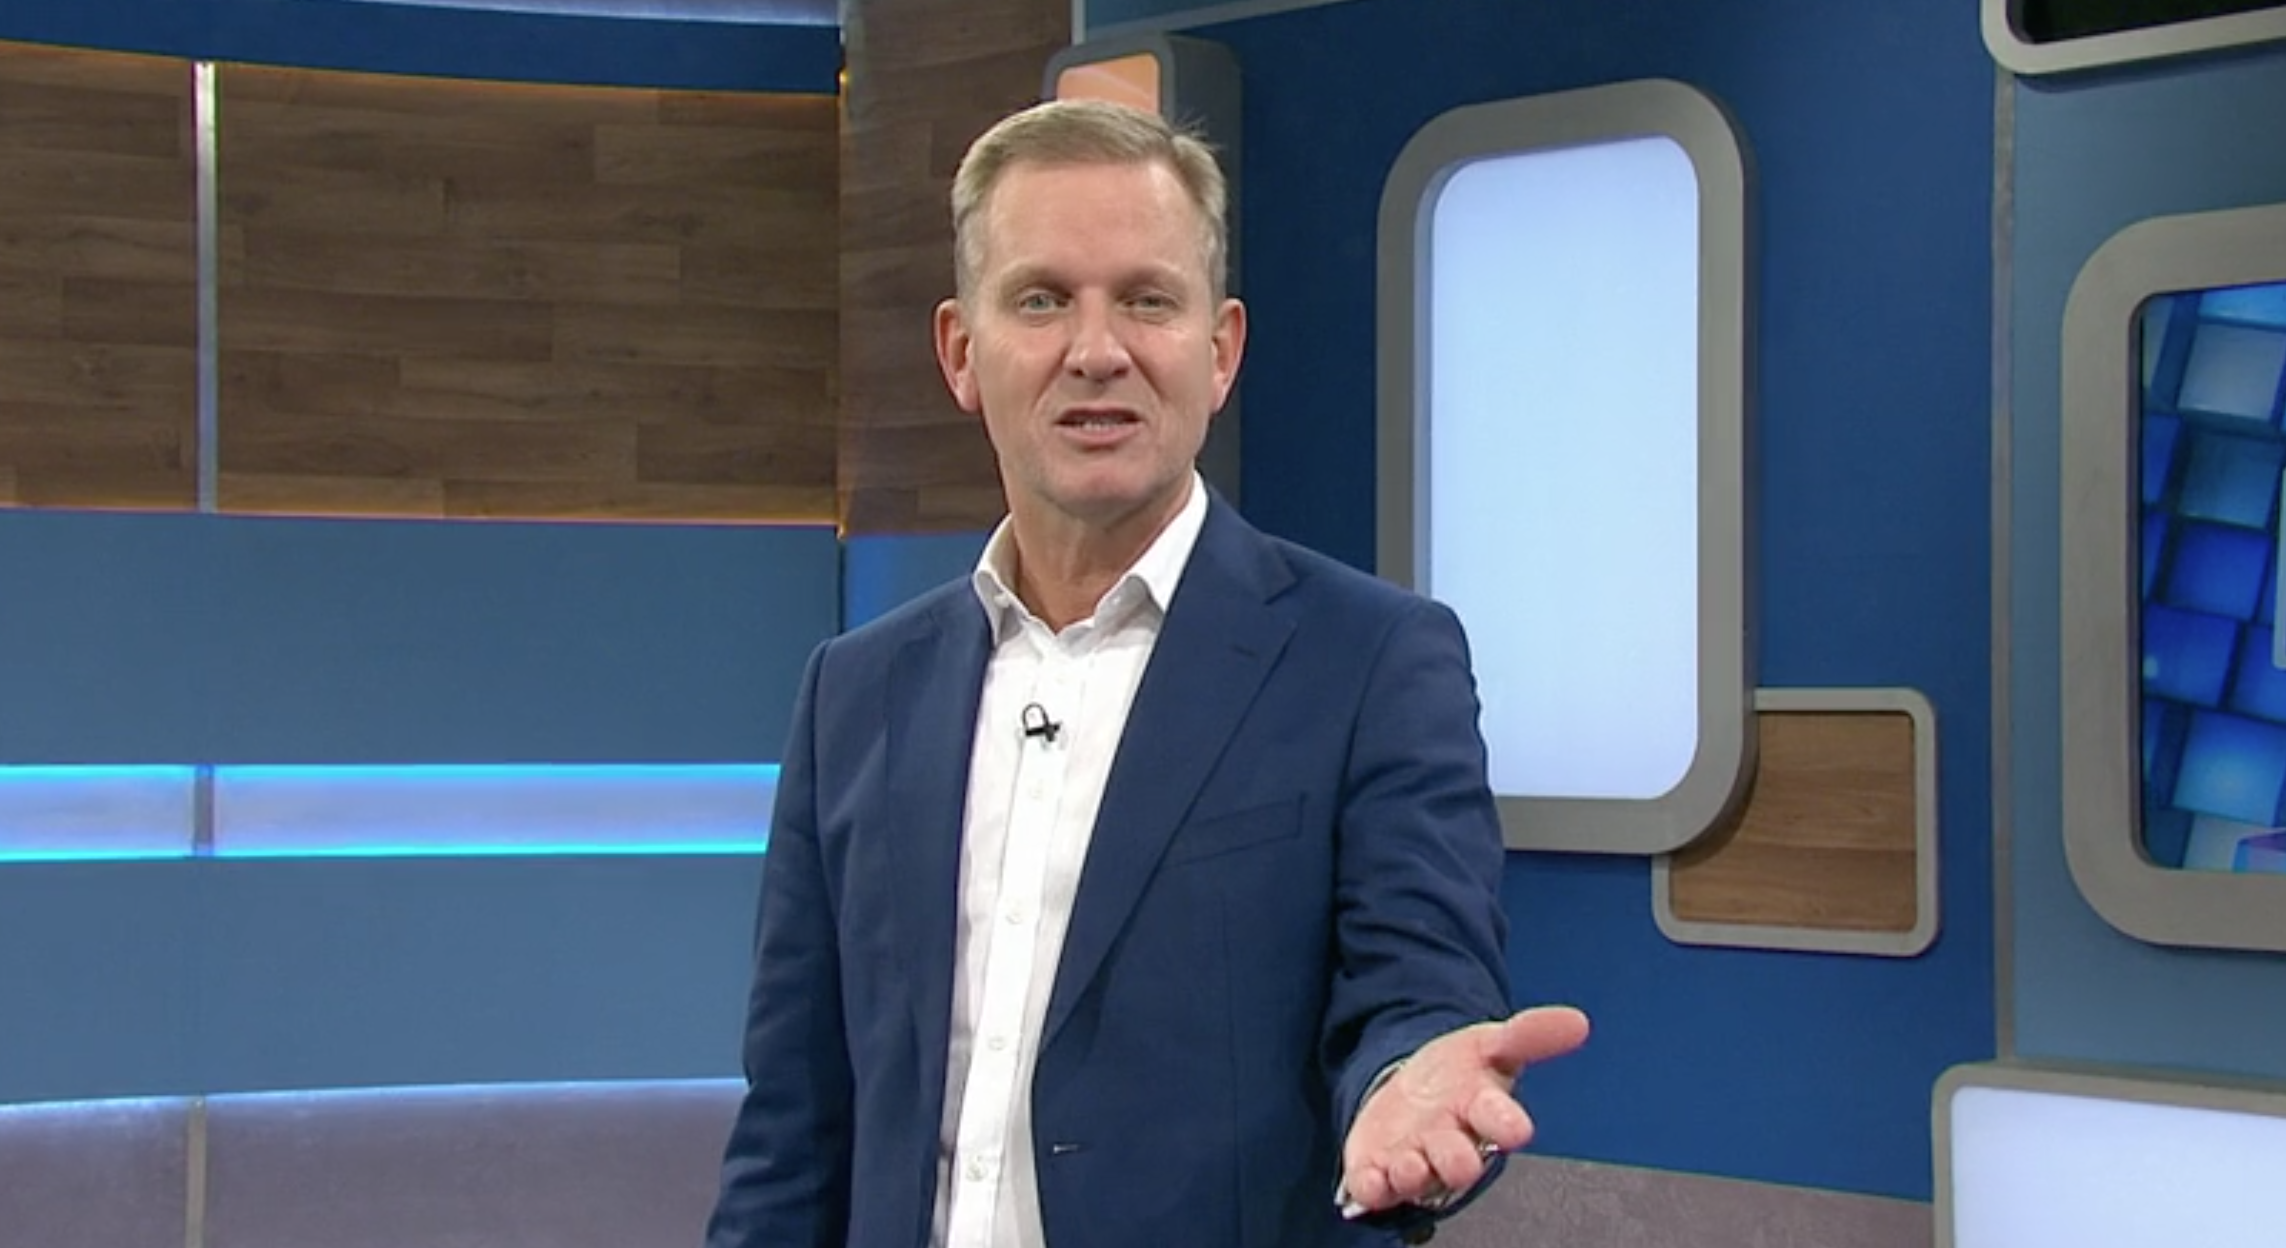 All episodes of The Jeremy Kyle Show pulled from ITV Hub